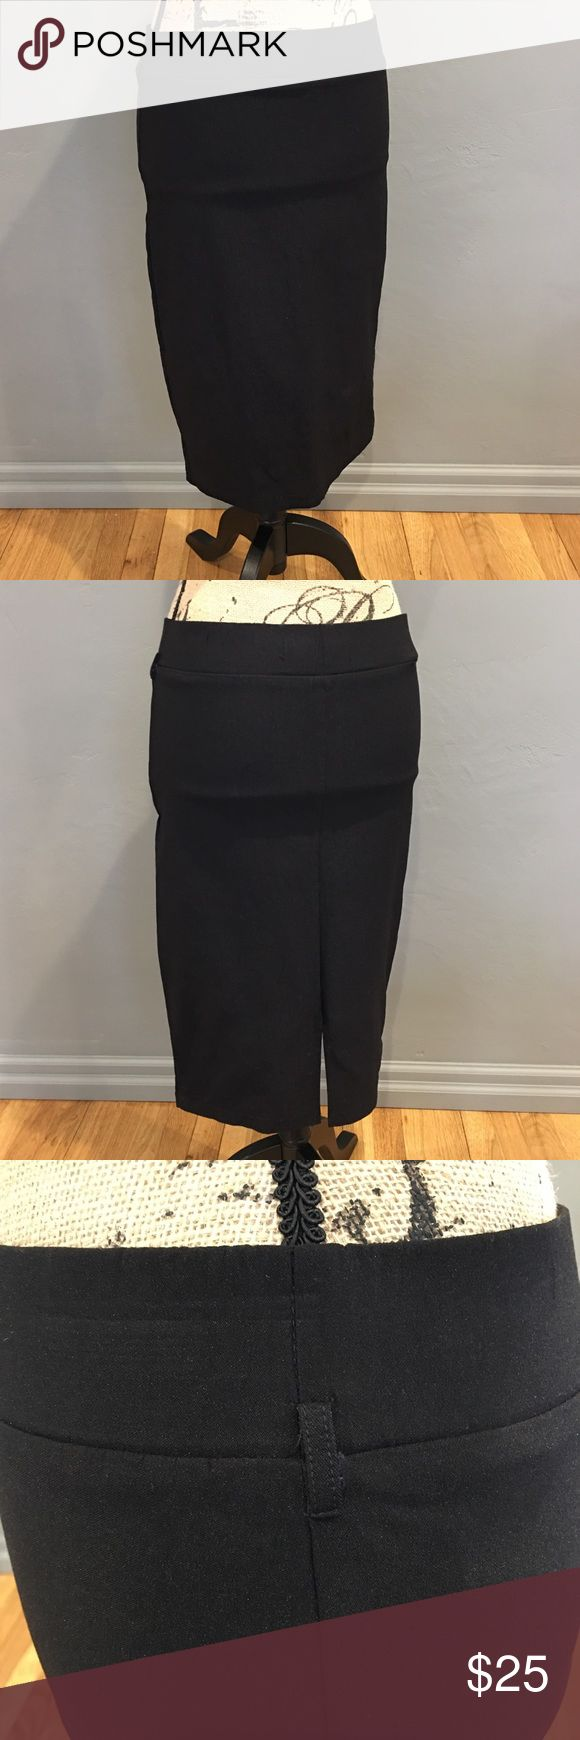 Boutique Stretch Black Pencil Skirt WORN ONCE! Boutique Stretch Black Pencil Skirt with belt loop detail and back slit. In perfect condition! Cheekie Boutique Skirts Pencil